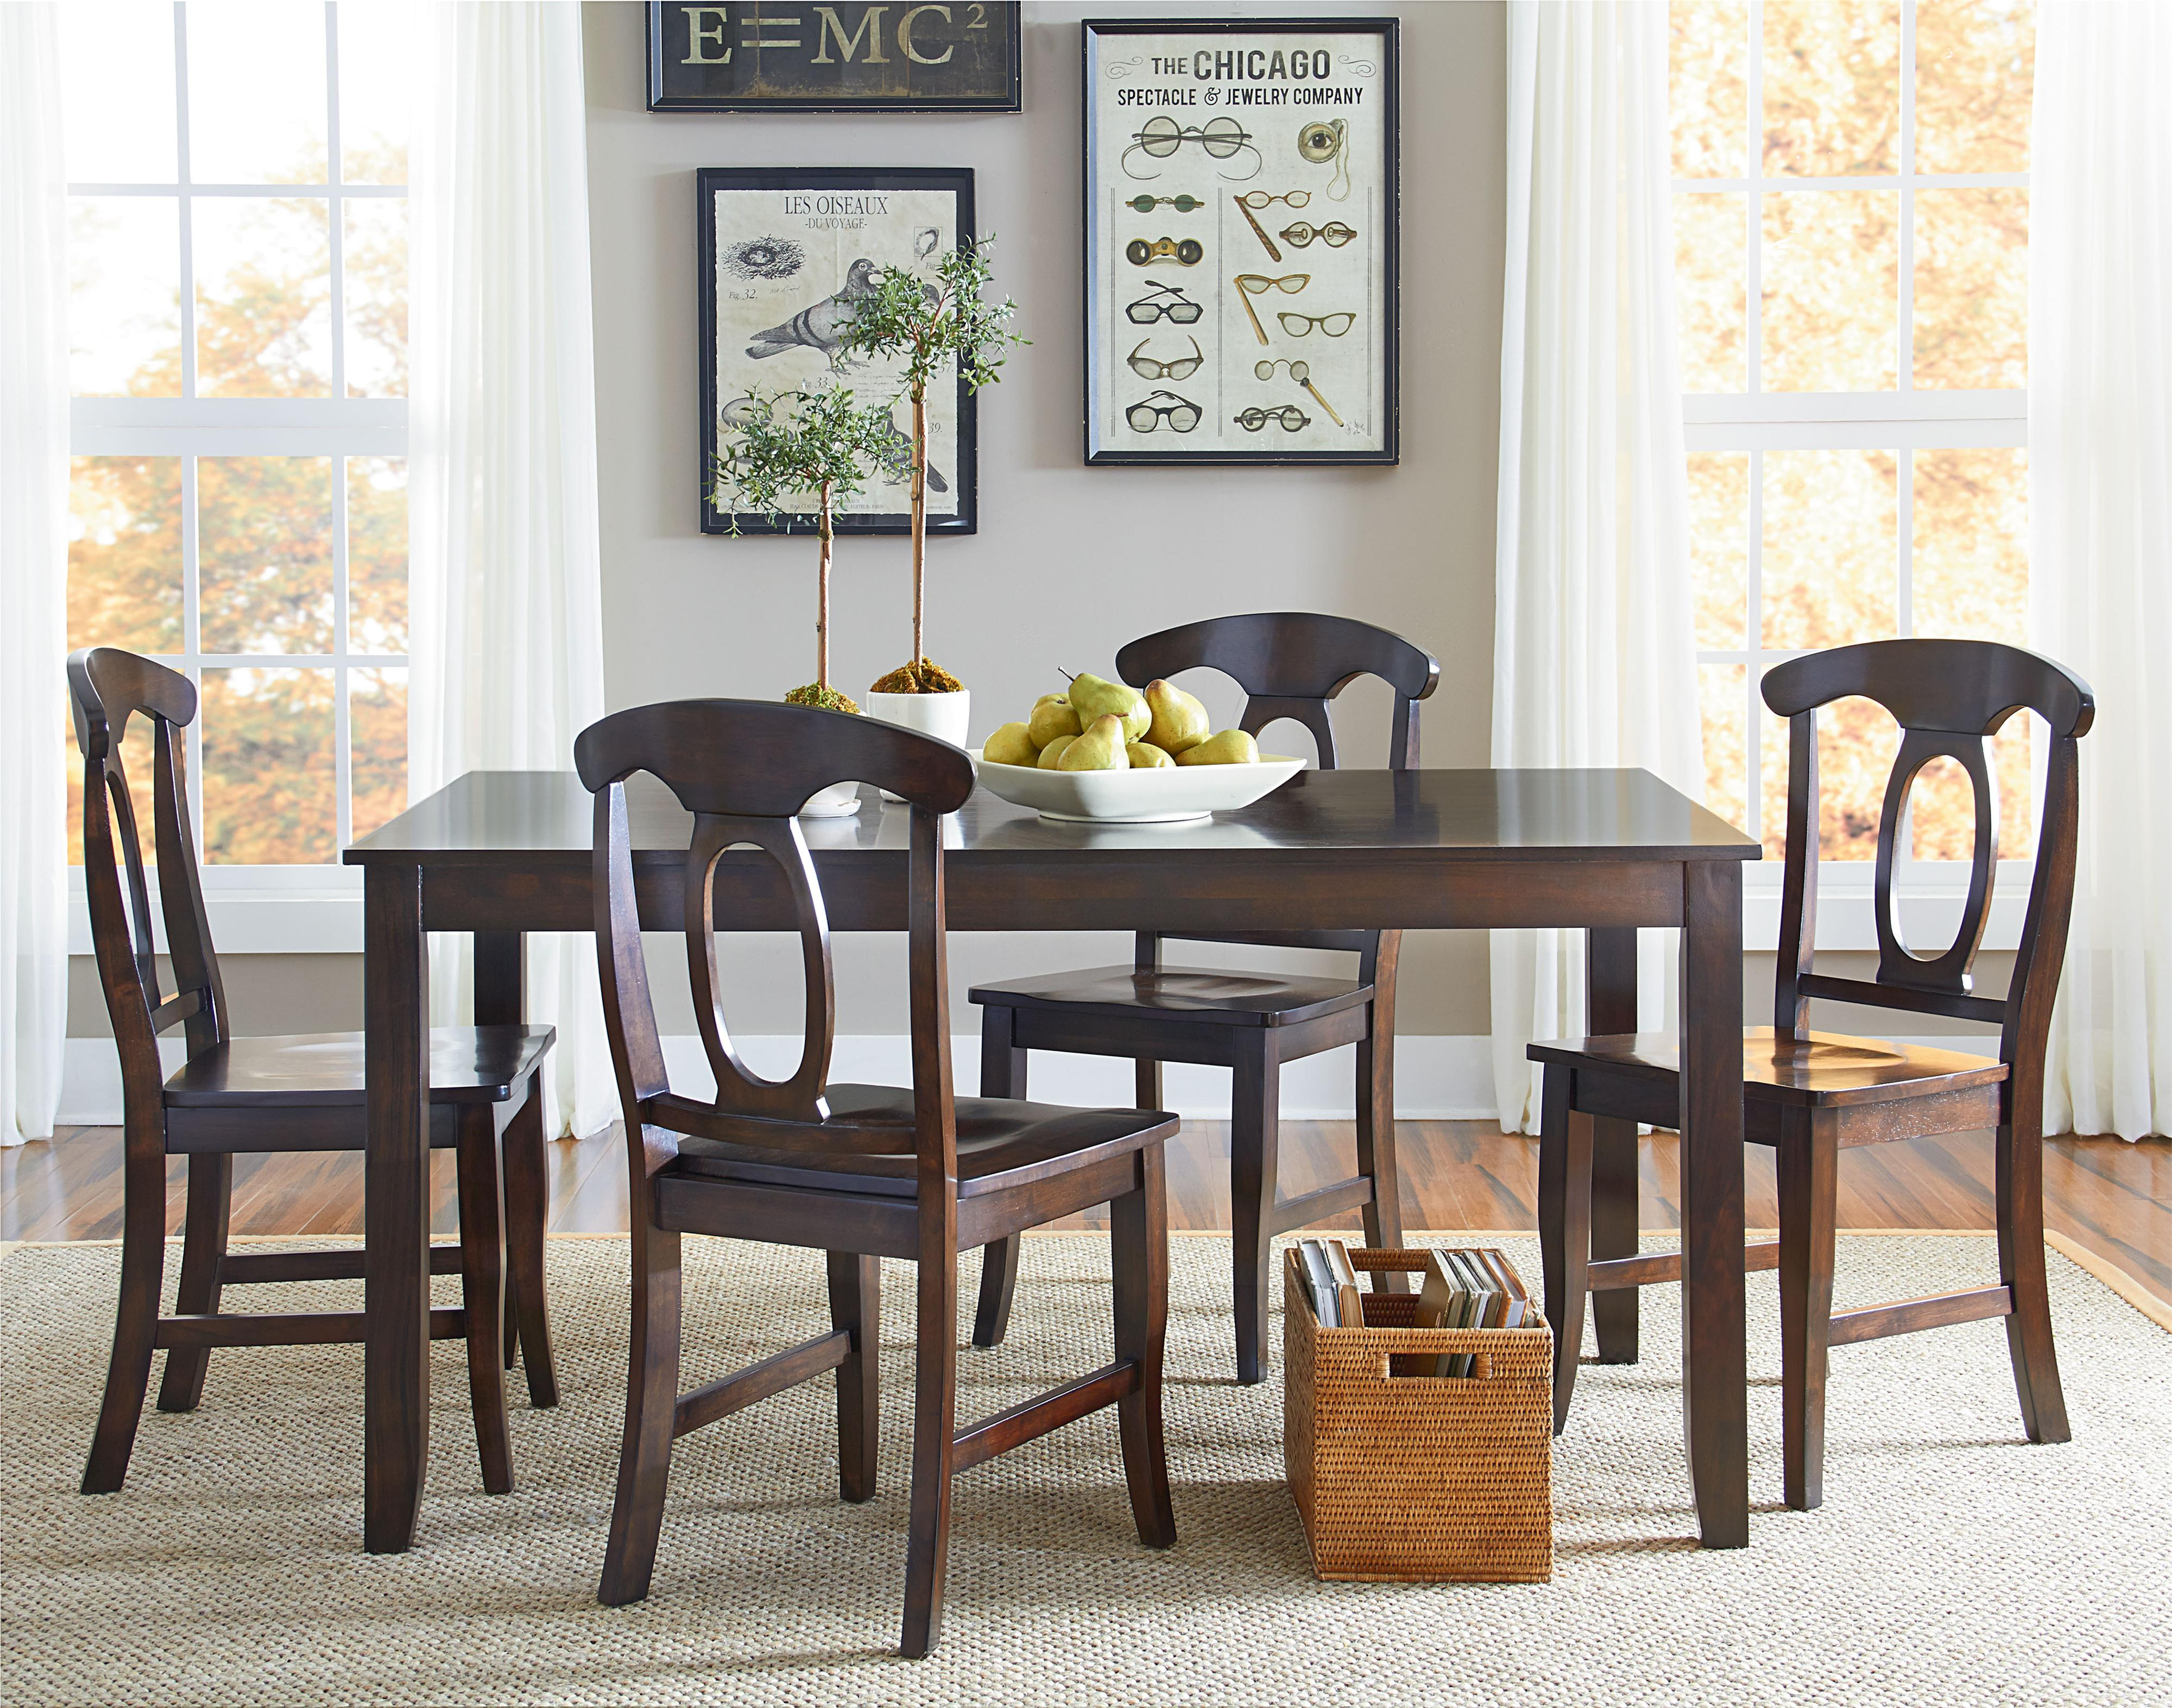 Standard Furniture Larkin 6 Piece Dining Table Set with Open Oval